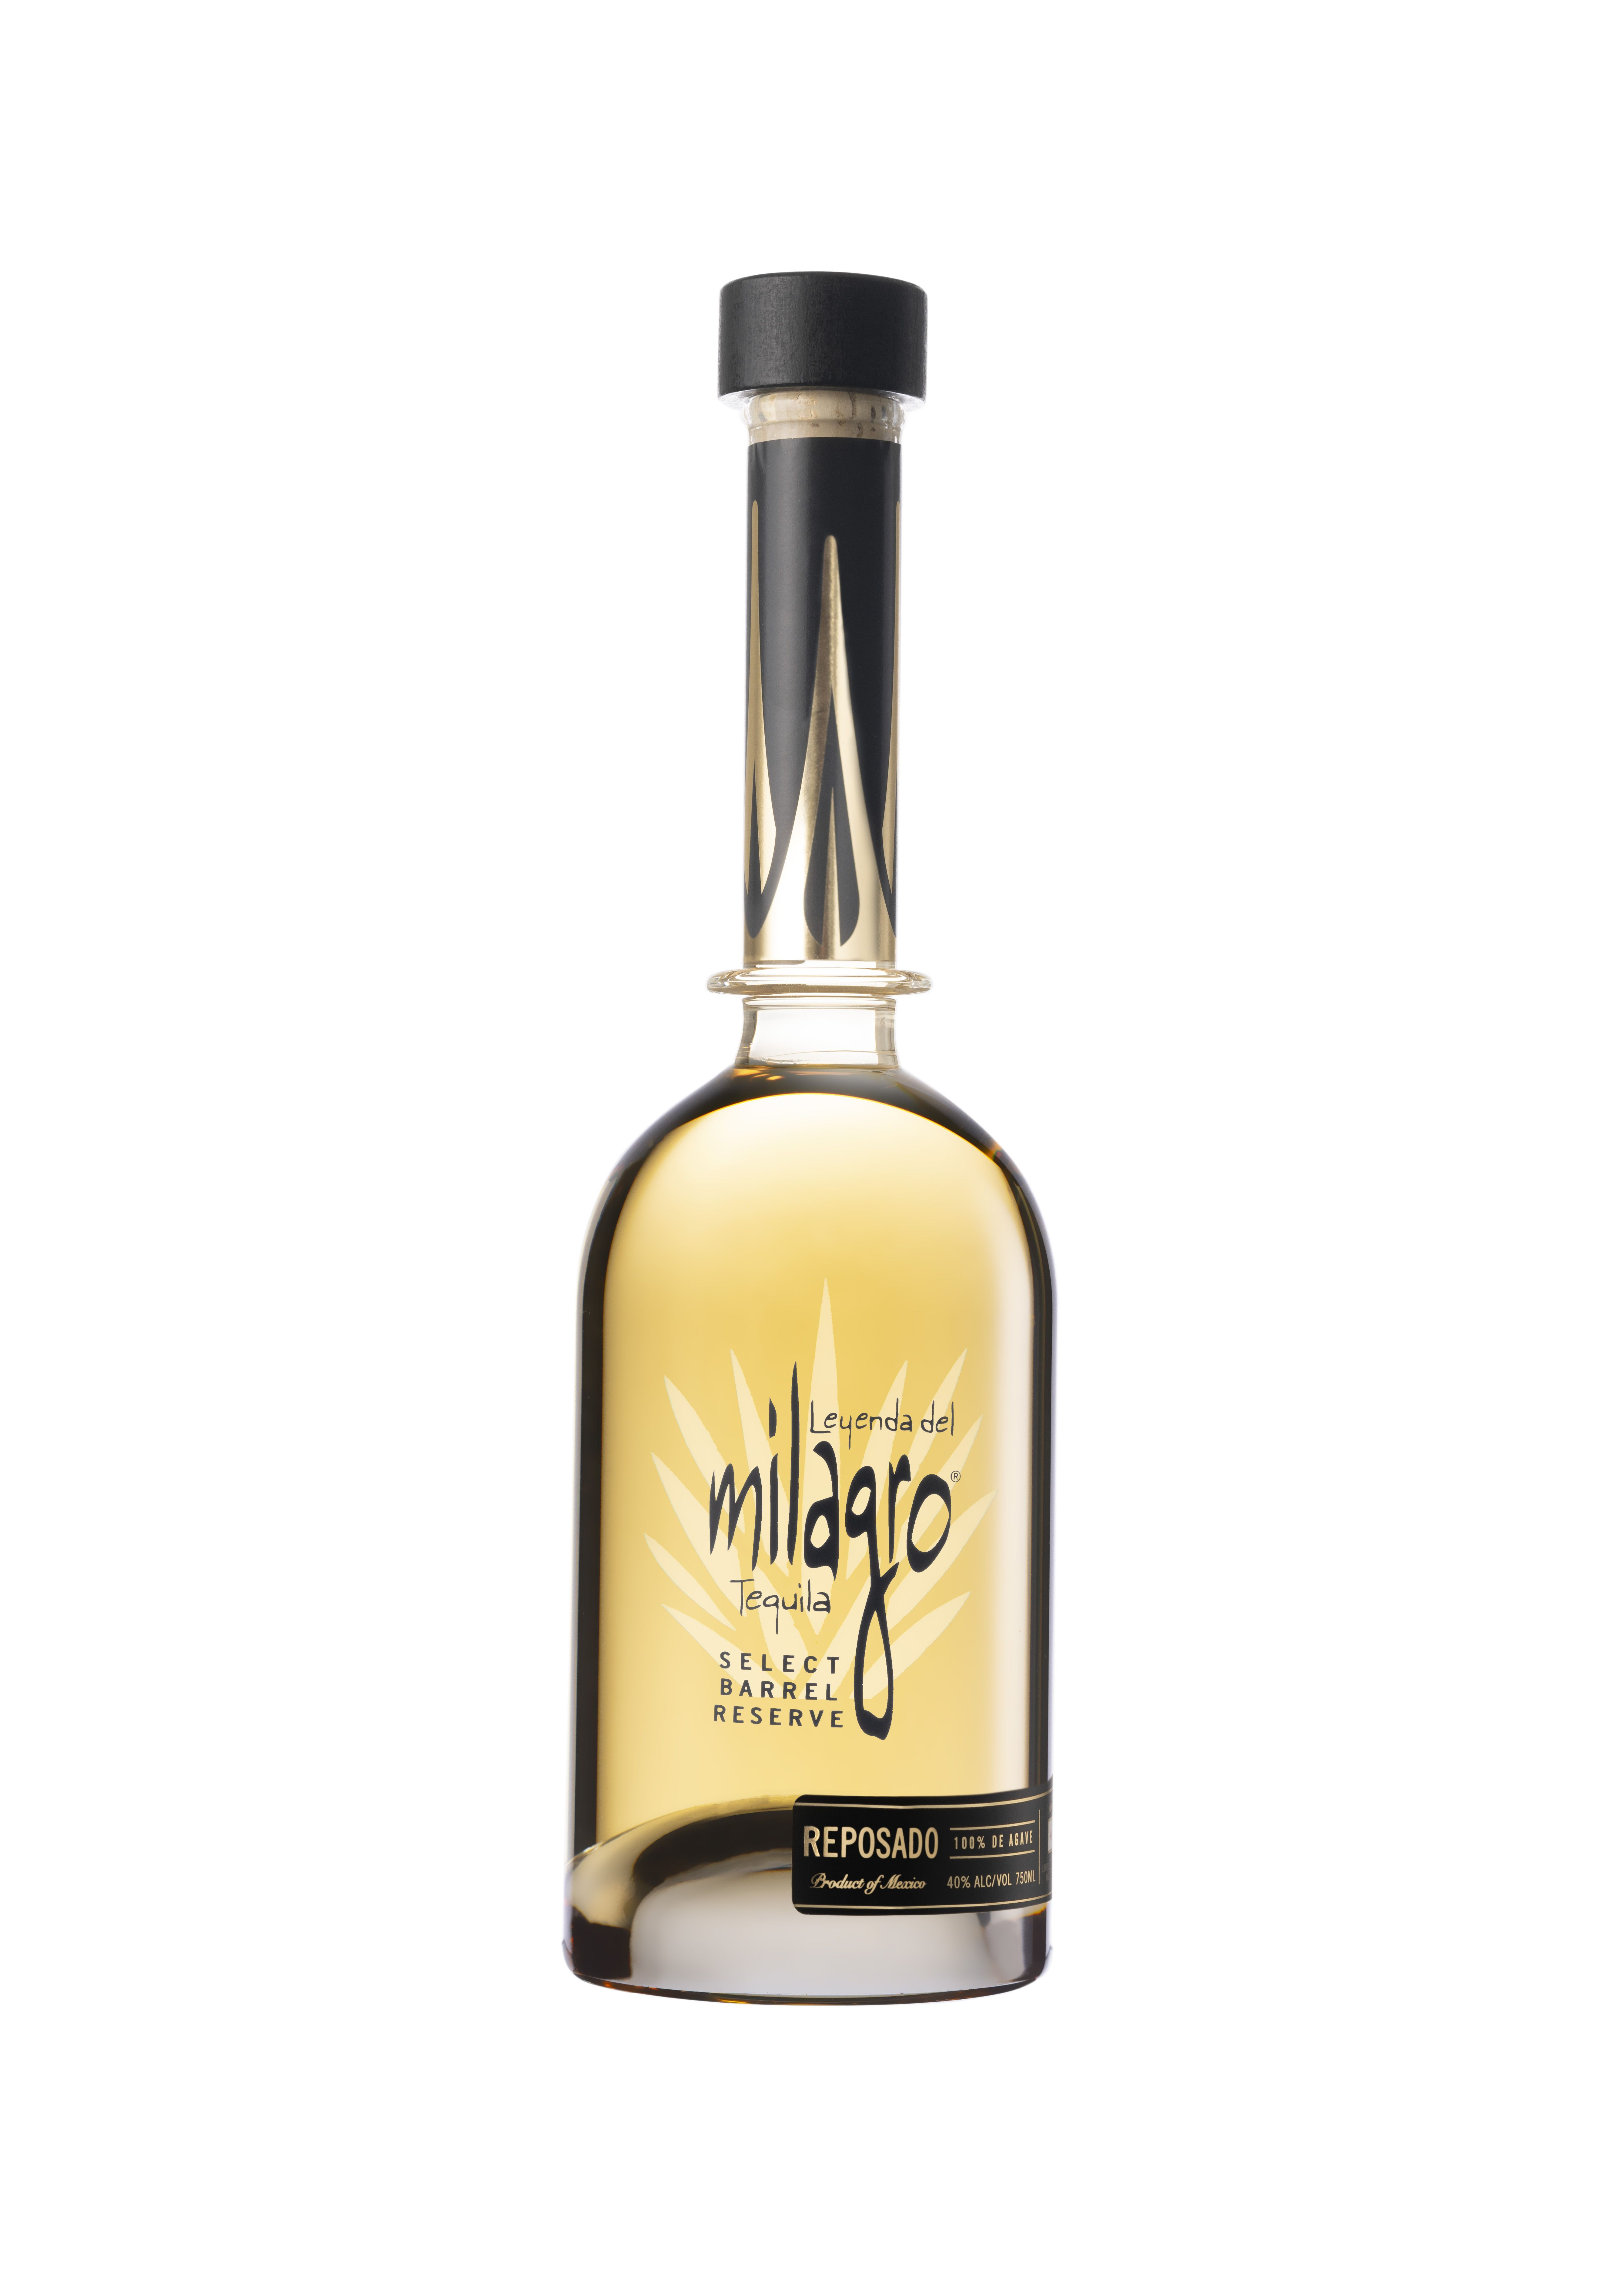 Pictures Of Tequila Bottles : pictures, tequila, bottles, Sipping, Tequilas, Tequila, Bottles, Brands